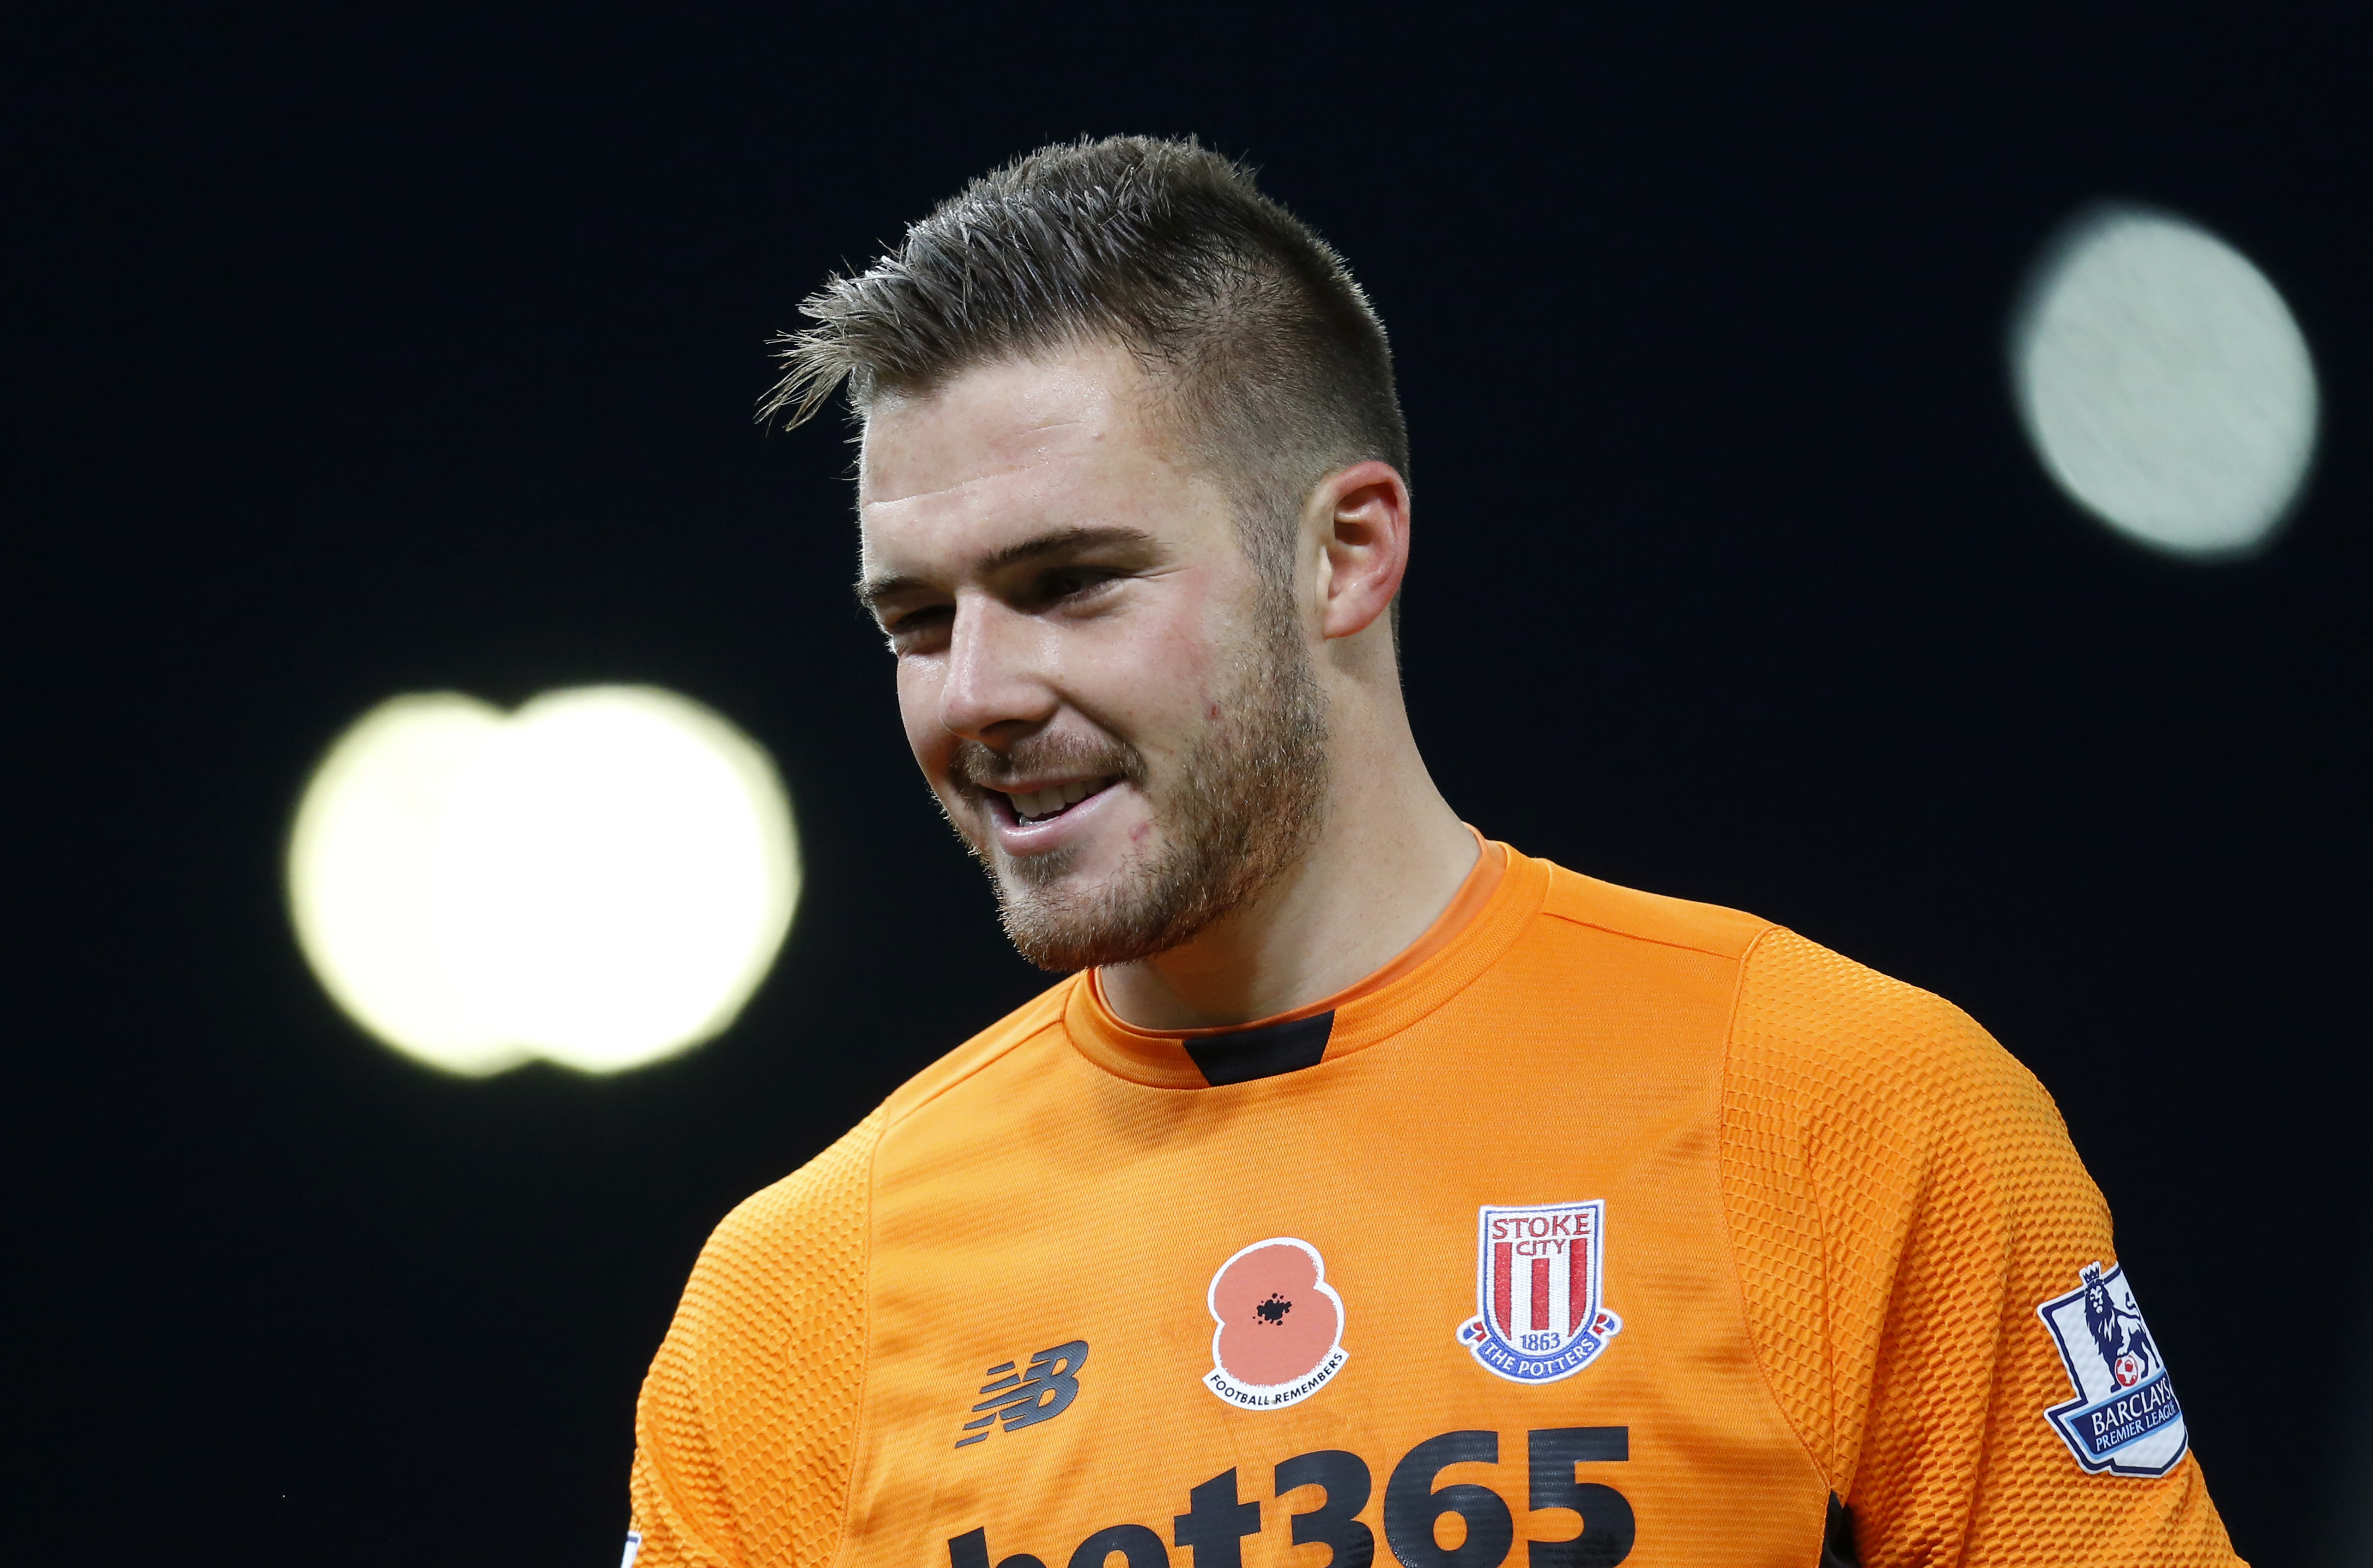 Stoke City's goalkeeper Jack Butland during their match of Chelsea Barclays Premier League at Britannia Stadium on November 7, 2015. Photo: Action Images via Reuters